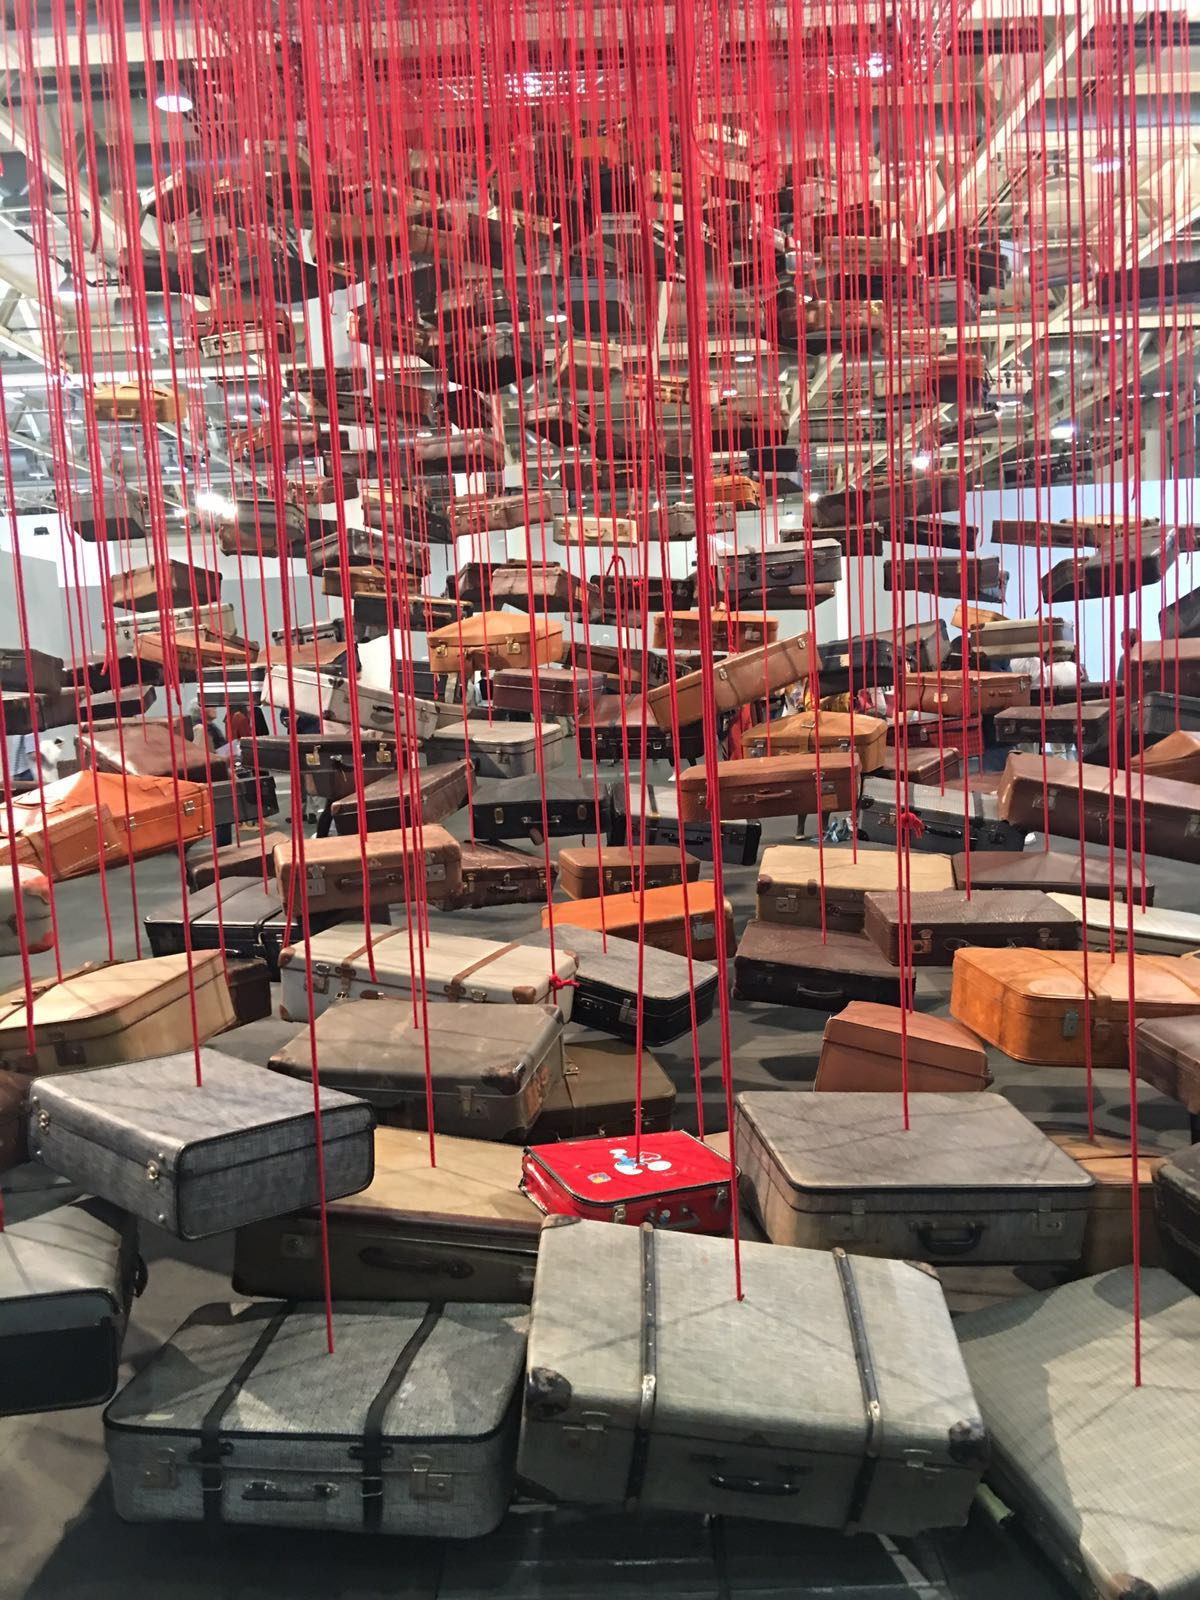 Chiharu Shiota / Accumulation - Searching for destination 2014 -2016